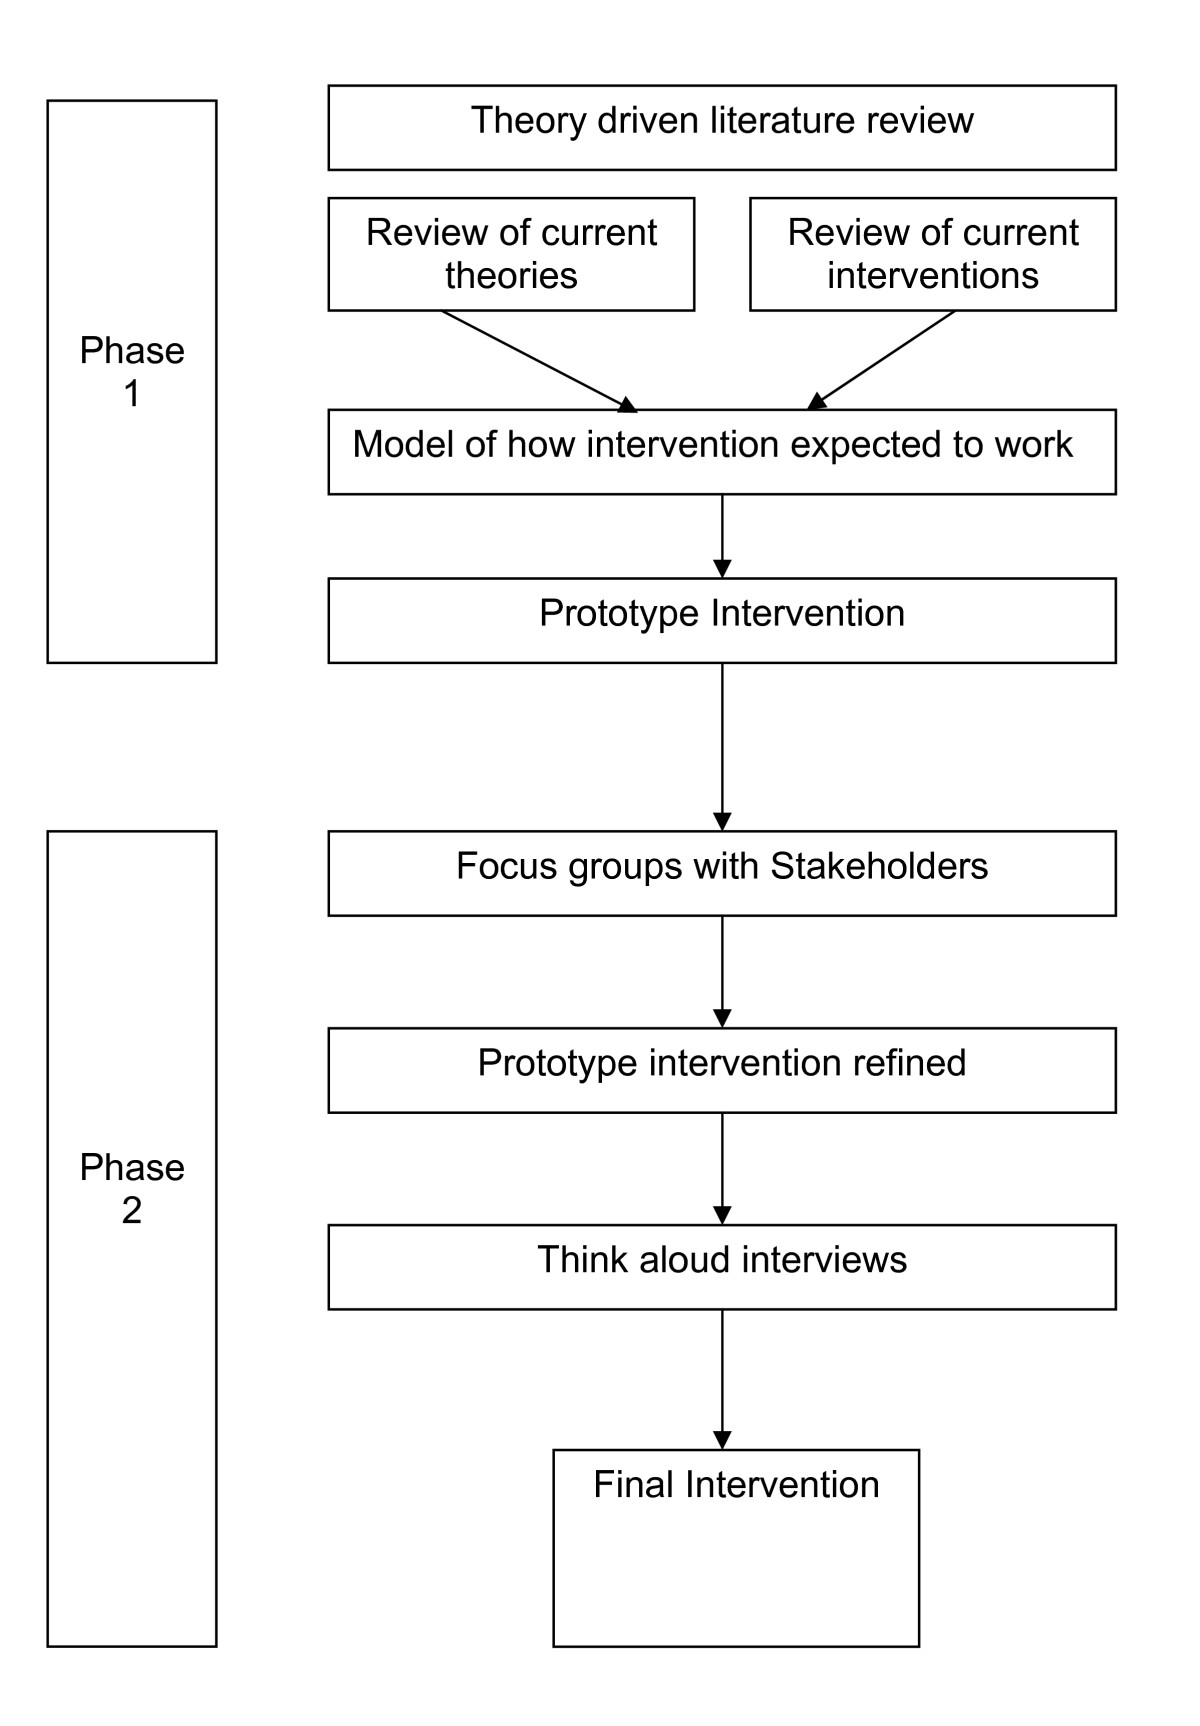 http://static-content.springer.com/image/art%3A10.1186%2F1472-6963-10-206/MediaObjects/12913_2009_Article_1343_Fig1_HTML.jpg